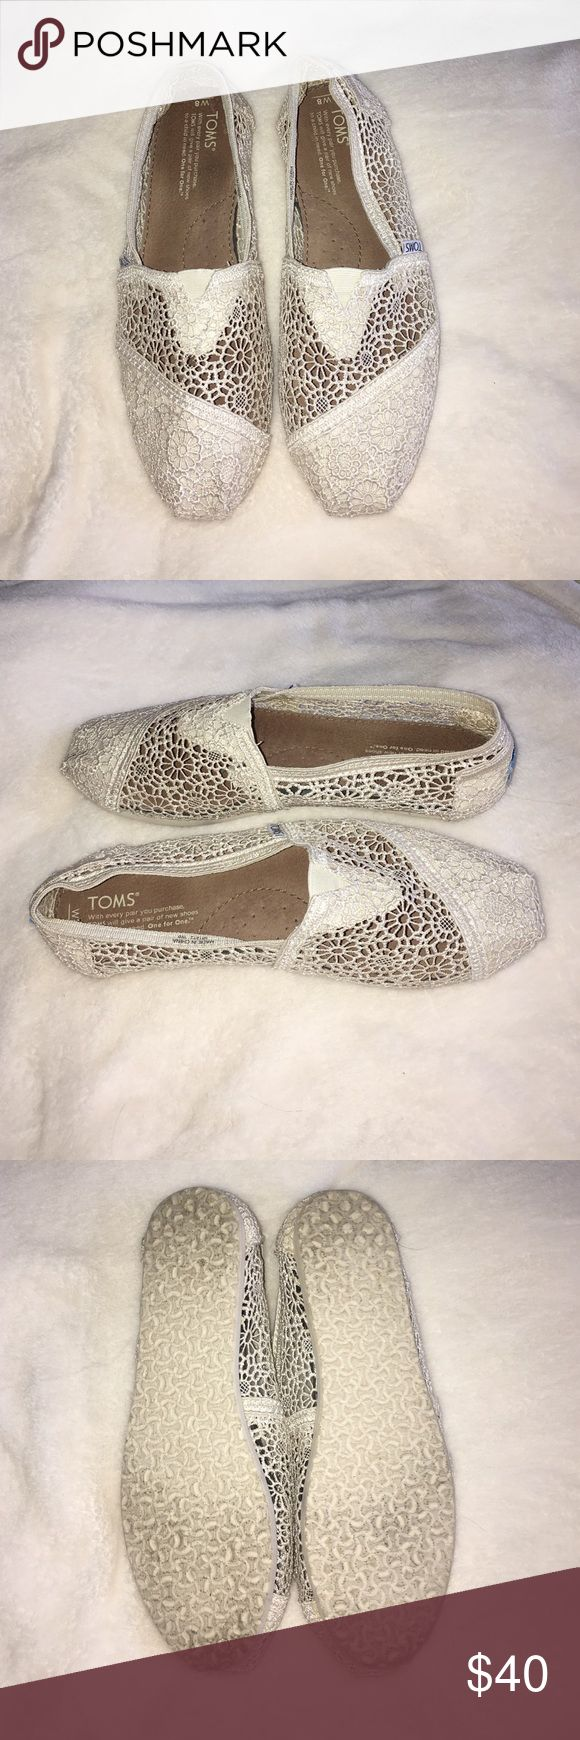 Women's Crochet Toms! Worn once, do not show signs of wear, crochet toms! Size 8 TOMS Shoes Flats & Loafers